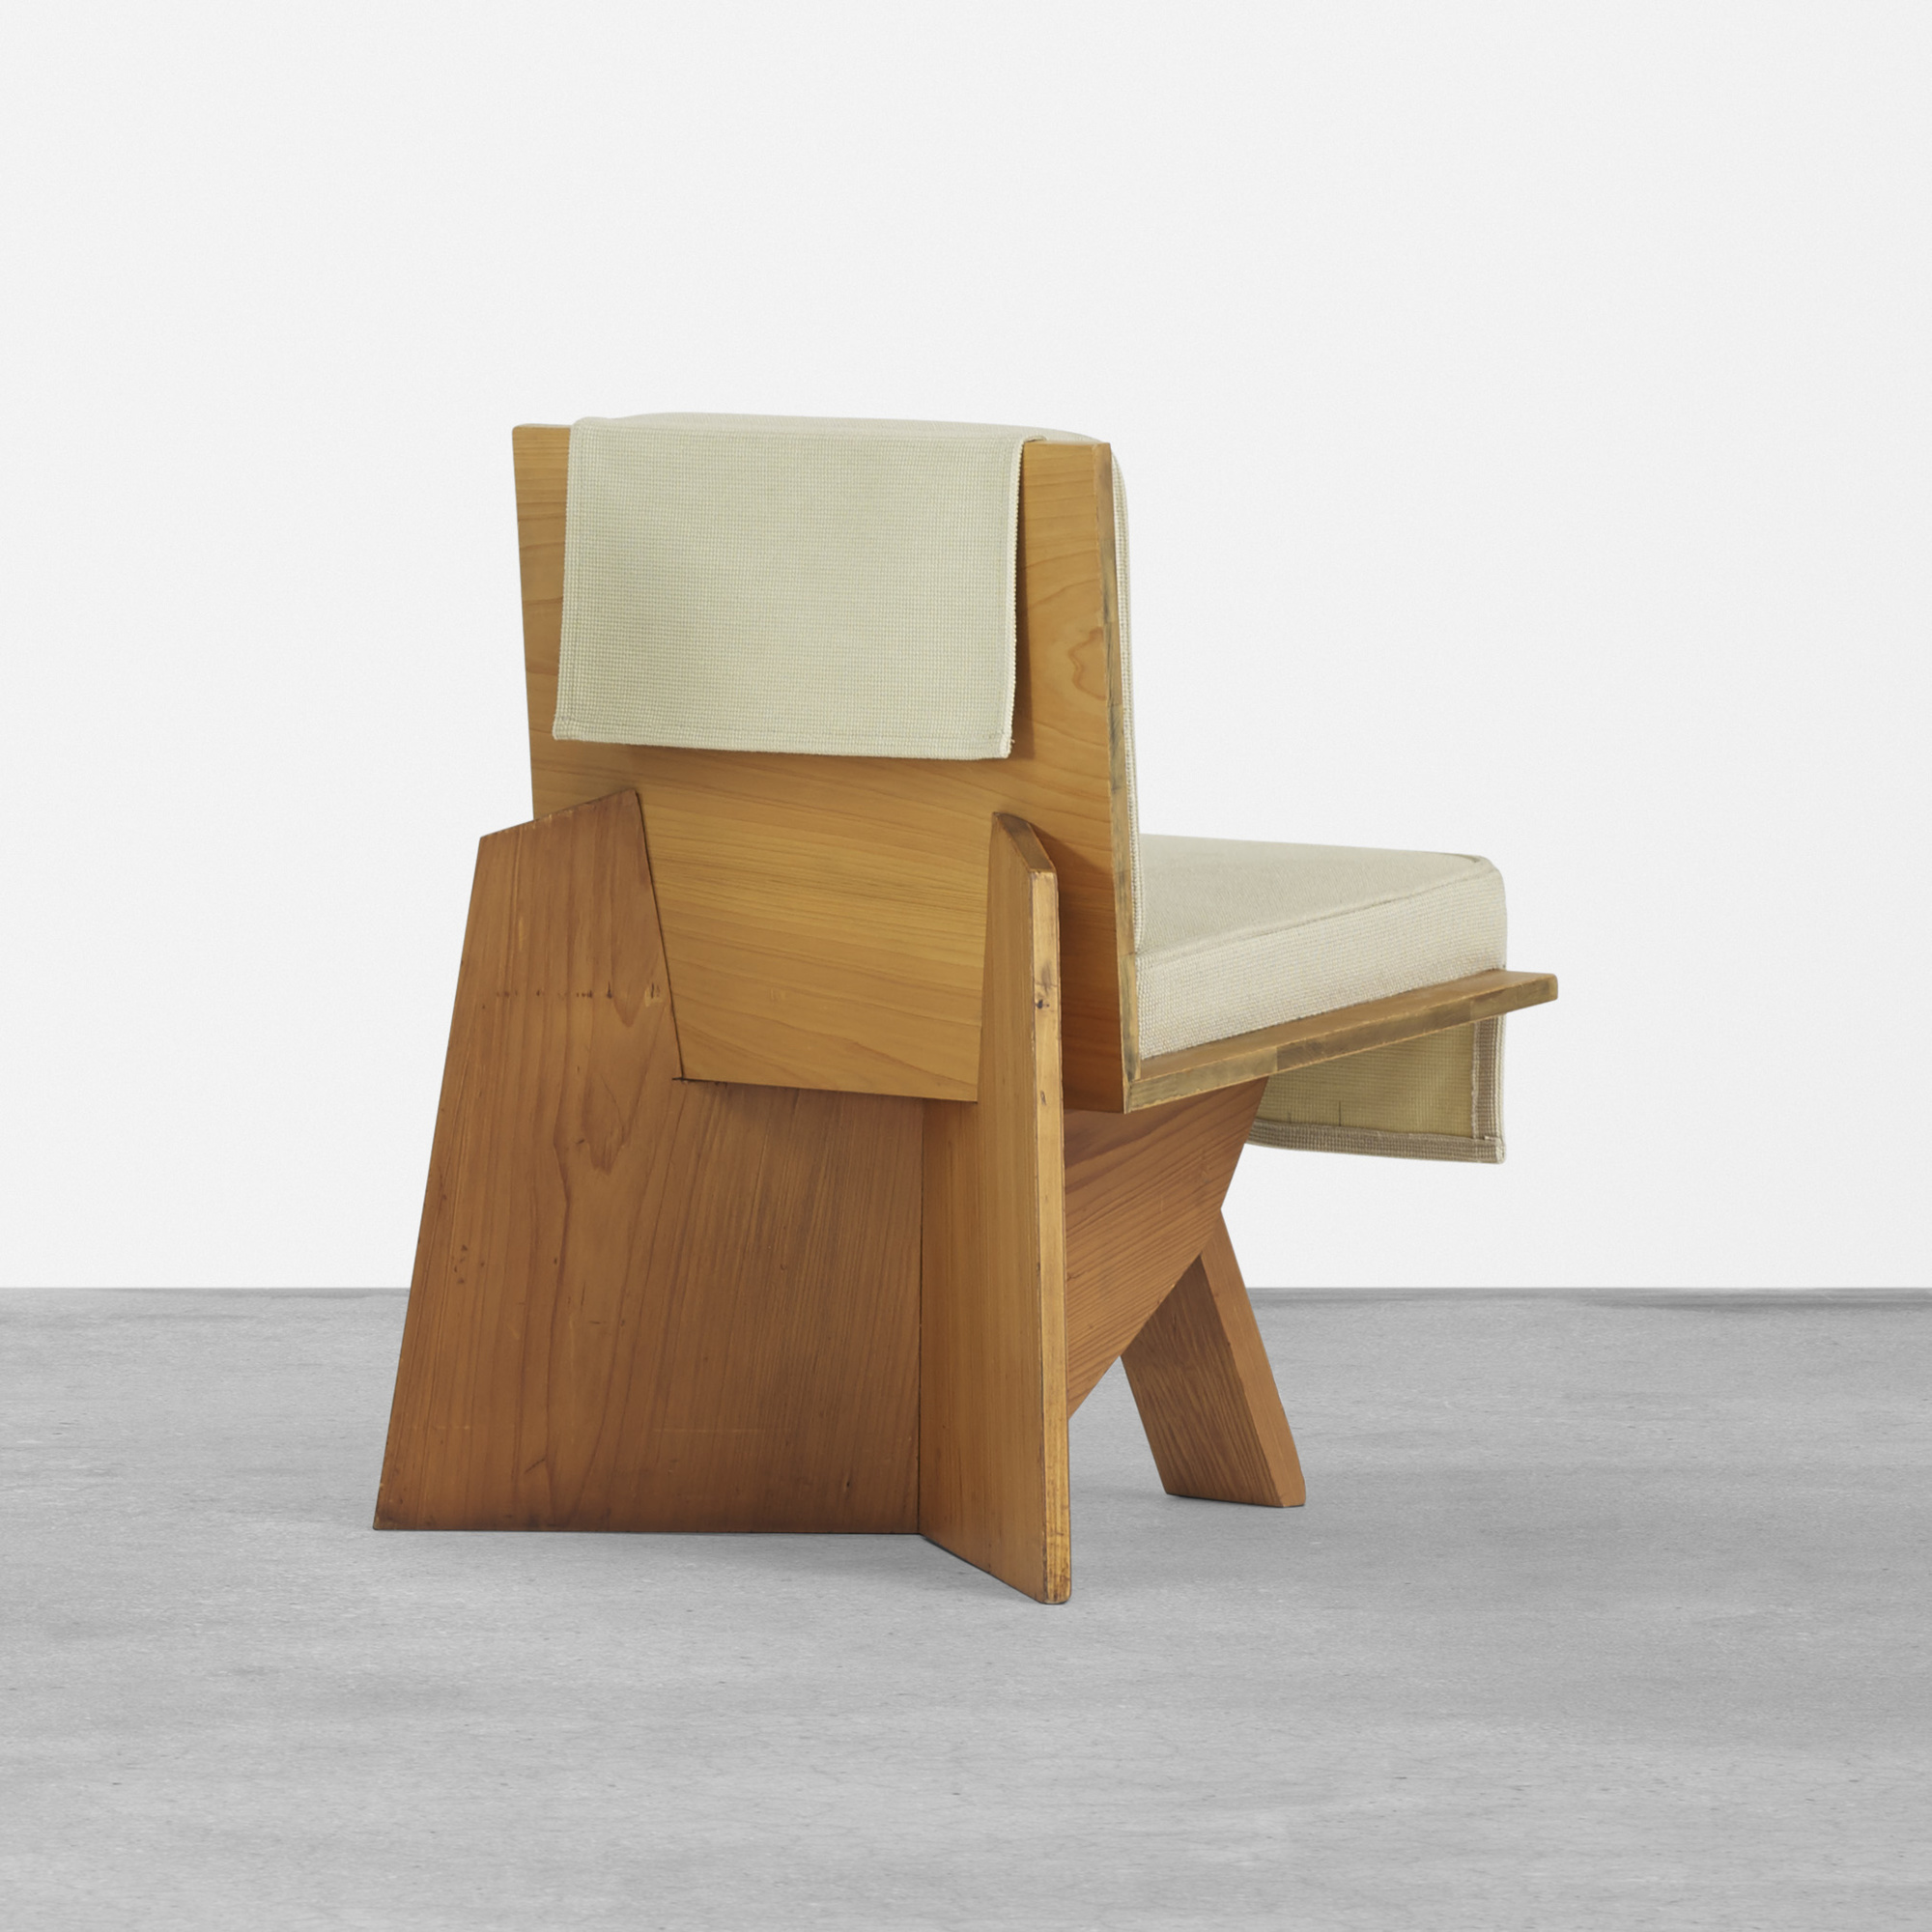 148: FRANK LLOYD WRIGHT, pair of lounge chairs from the